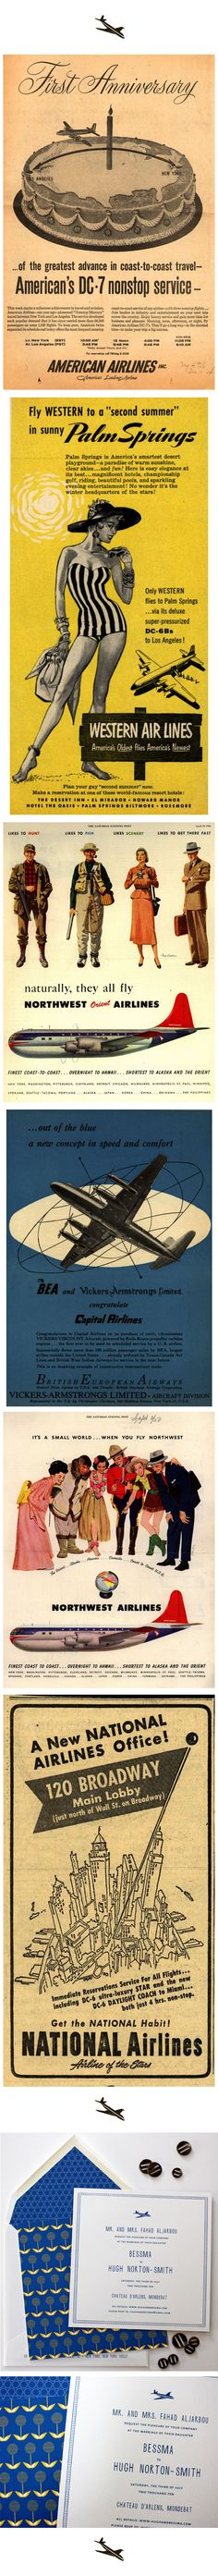 aviation inspiration by mr boddington's studio